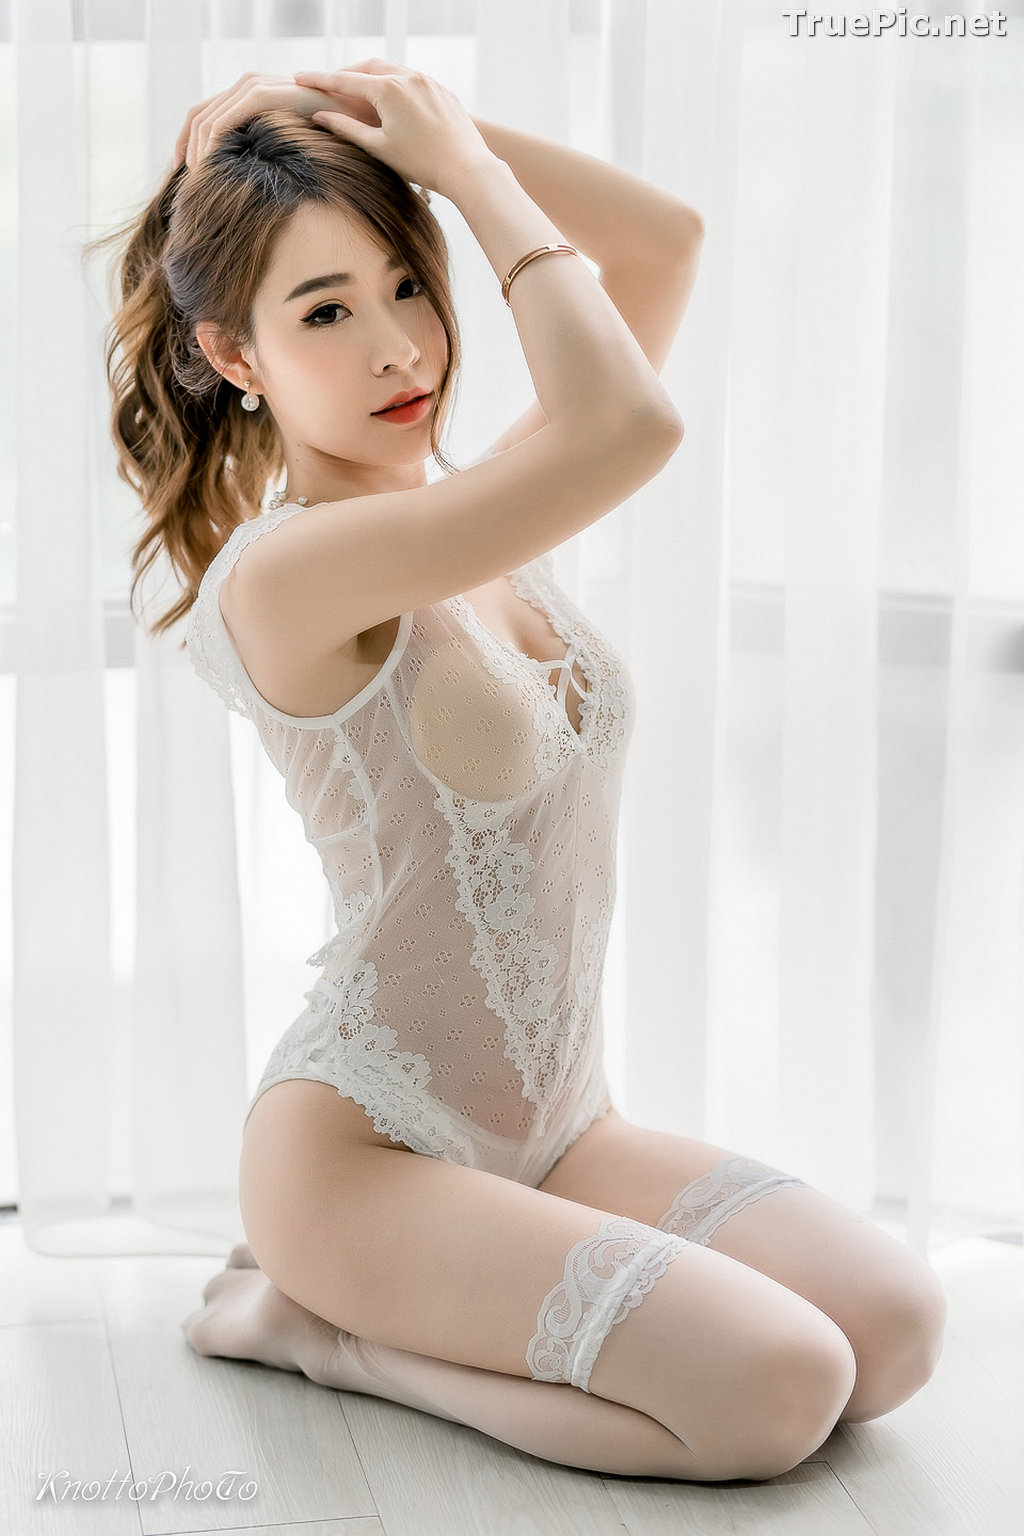 Image Thailand Hot Beauty Model - Thipsuda Jitaree - White Lace Underwear - TruePic.net - Picture-3